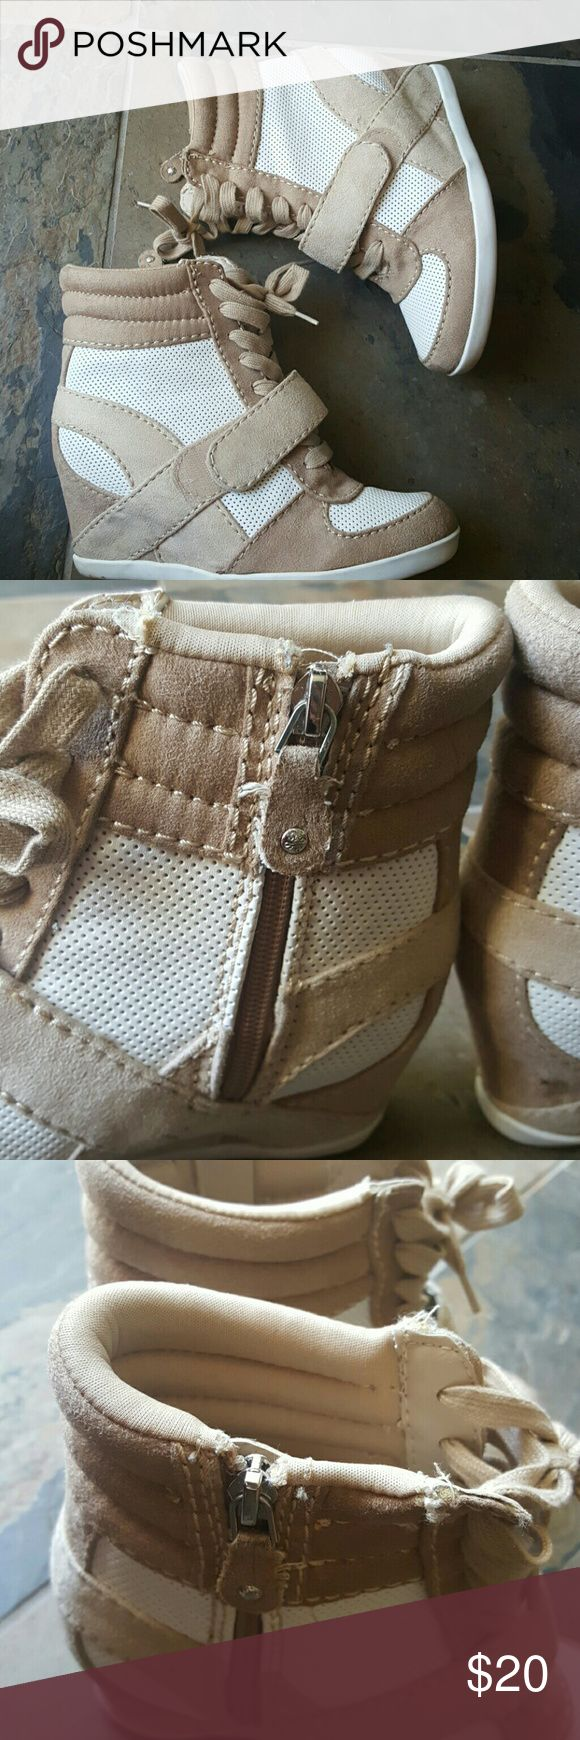 Vera Wang tan white wedge sneakers SimplyVera Vera Wang swade tan and white lace sneakers wedge gently worn size 6 but I'm a 6.57 so there is wiggle room at if you are a size 6 Simply Vera Vera Wang Shoes Wedges